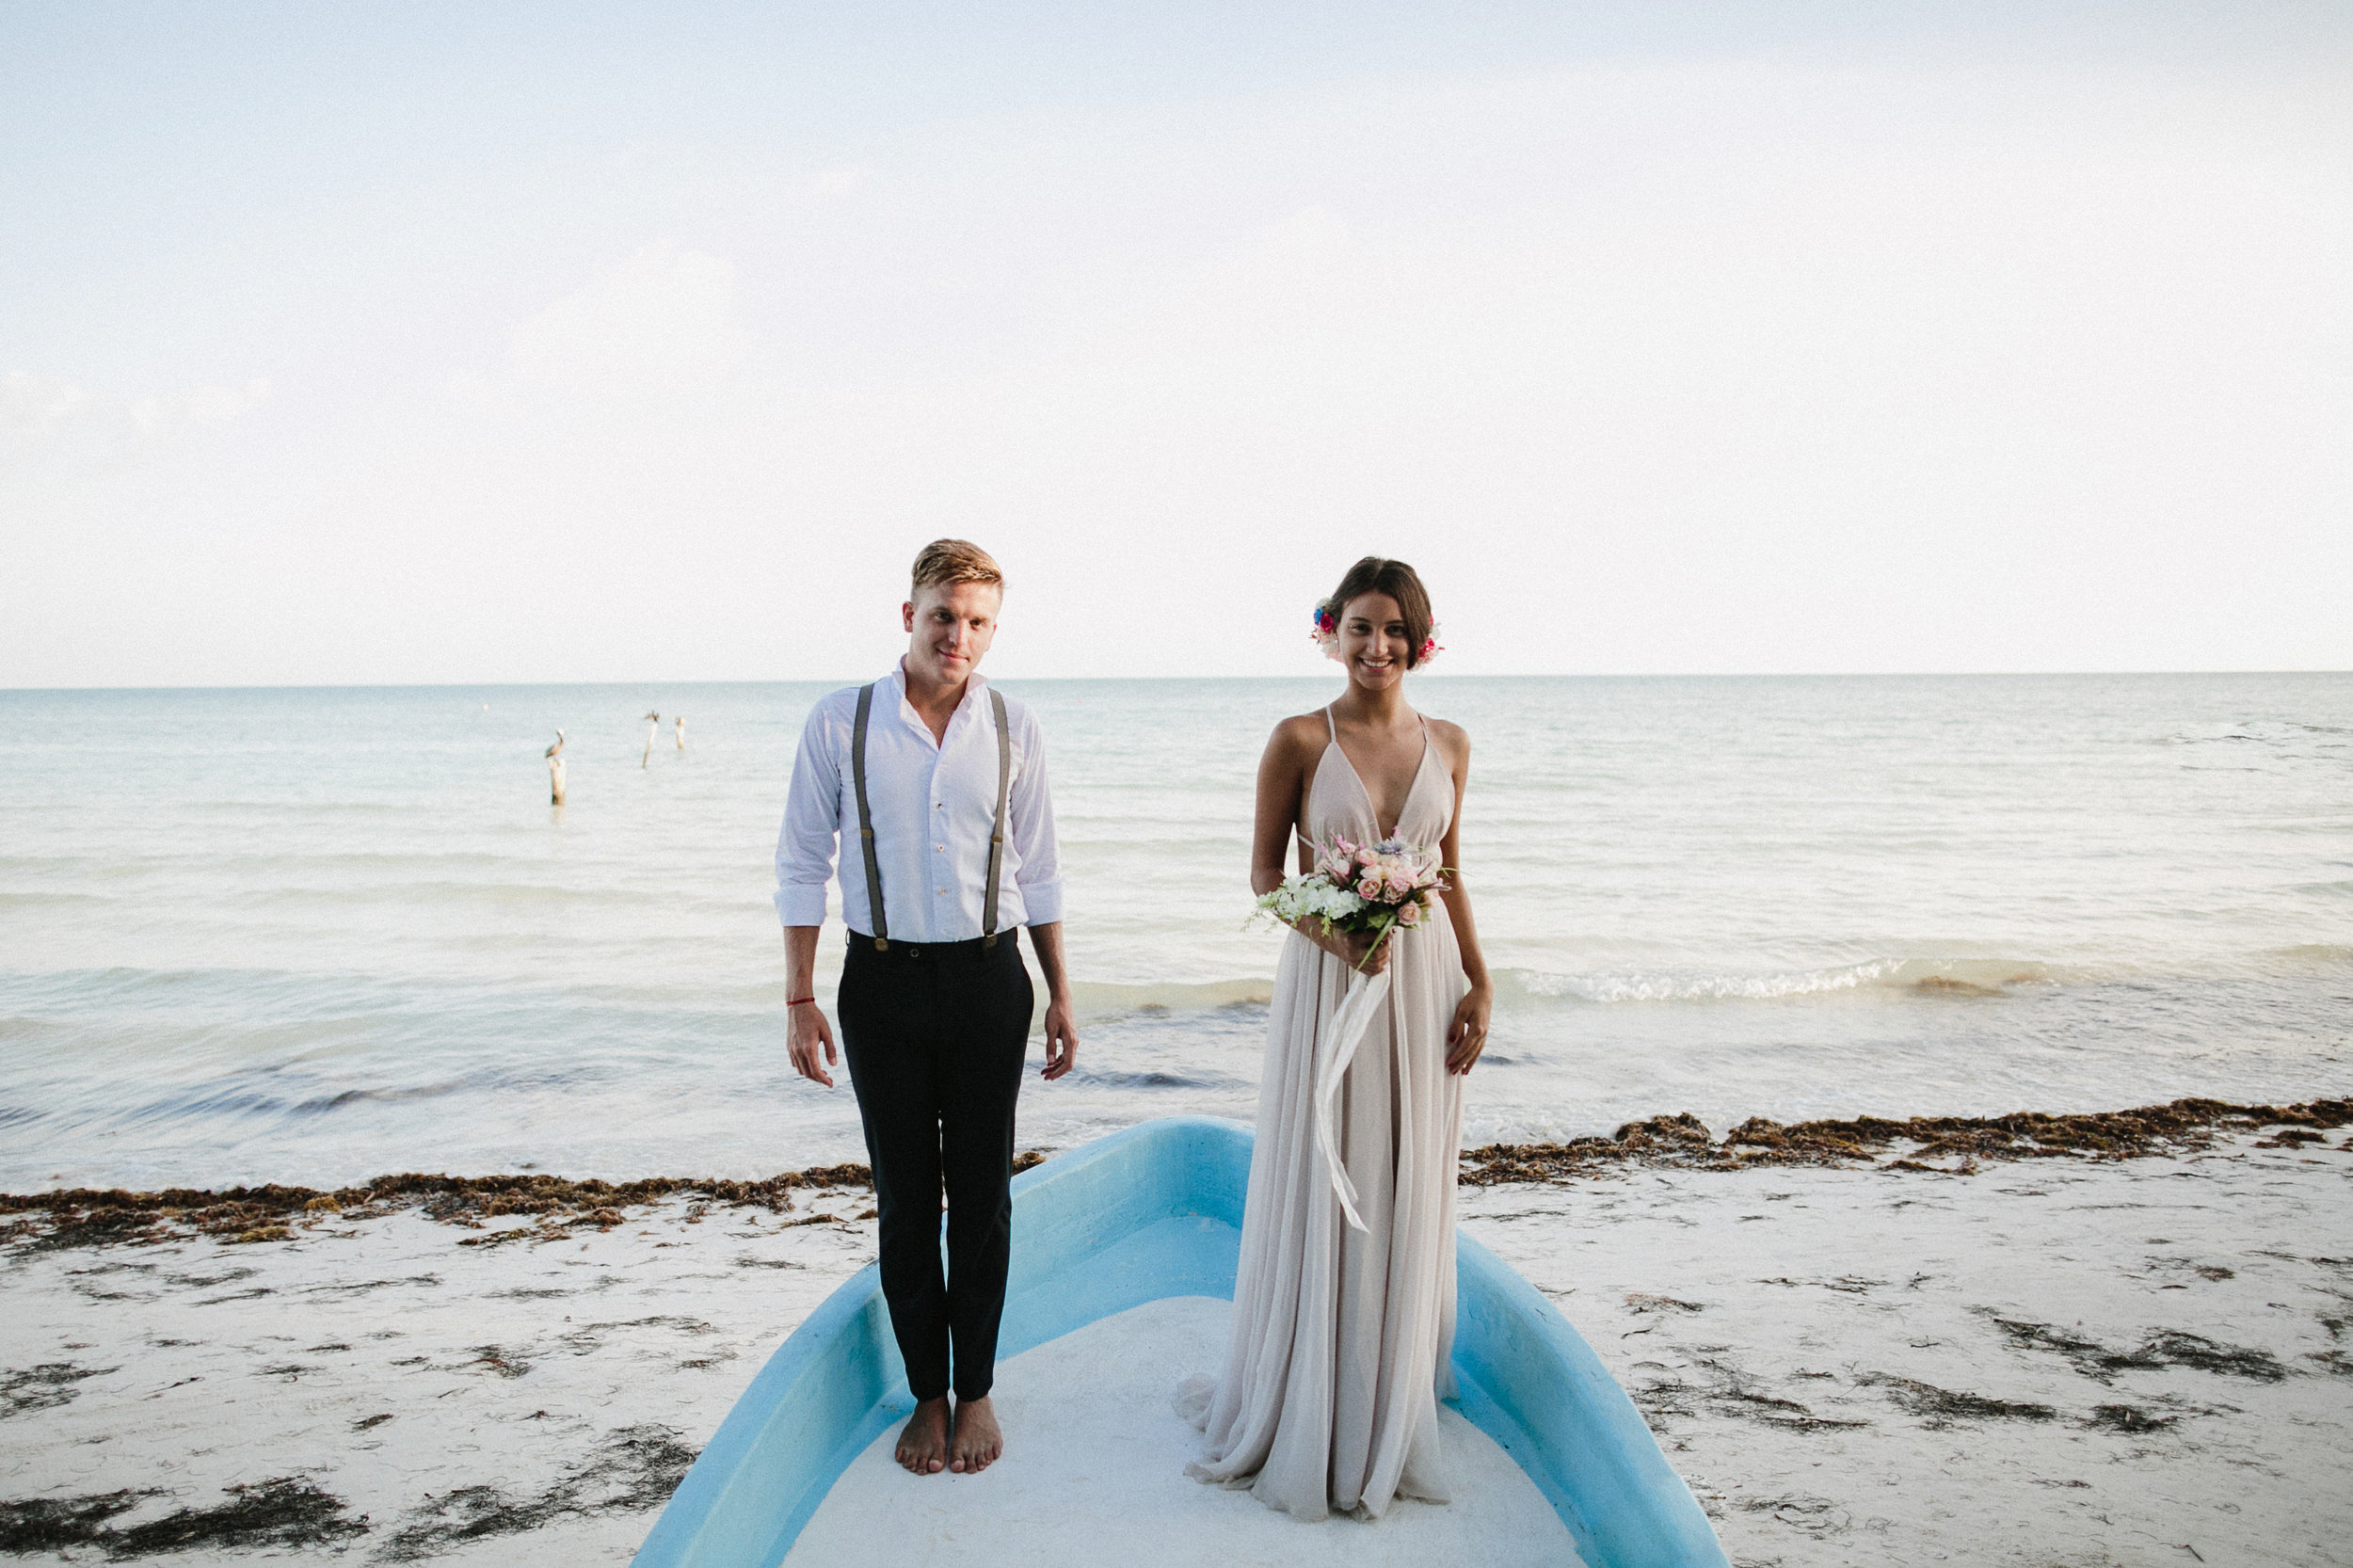 alfonso_flores_destination_wedding_photographer_holbox_nomada_workshop-175.jpg